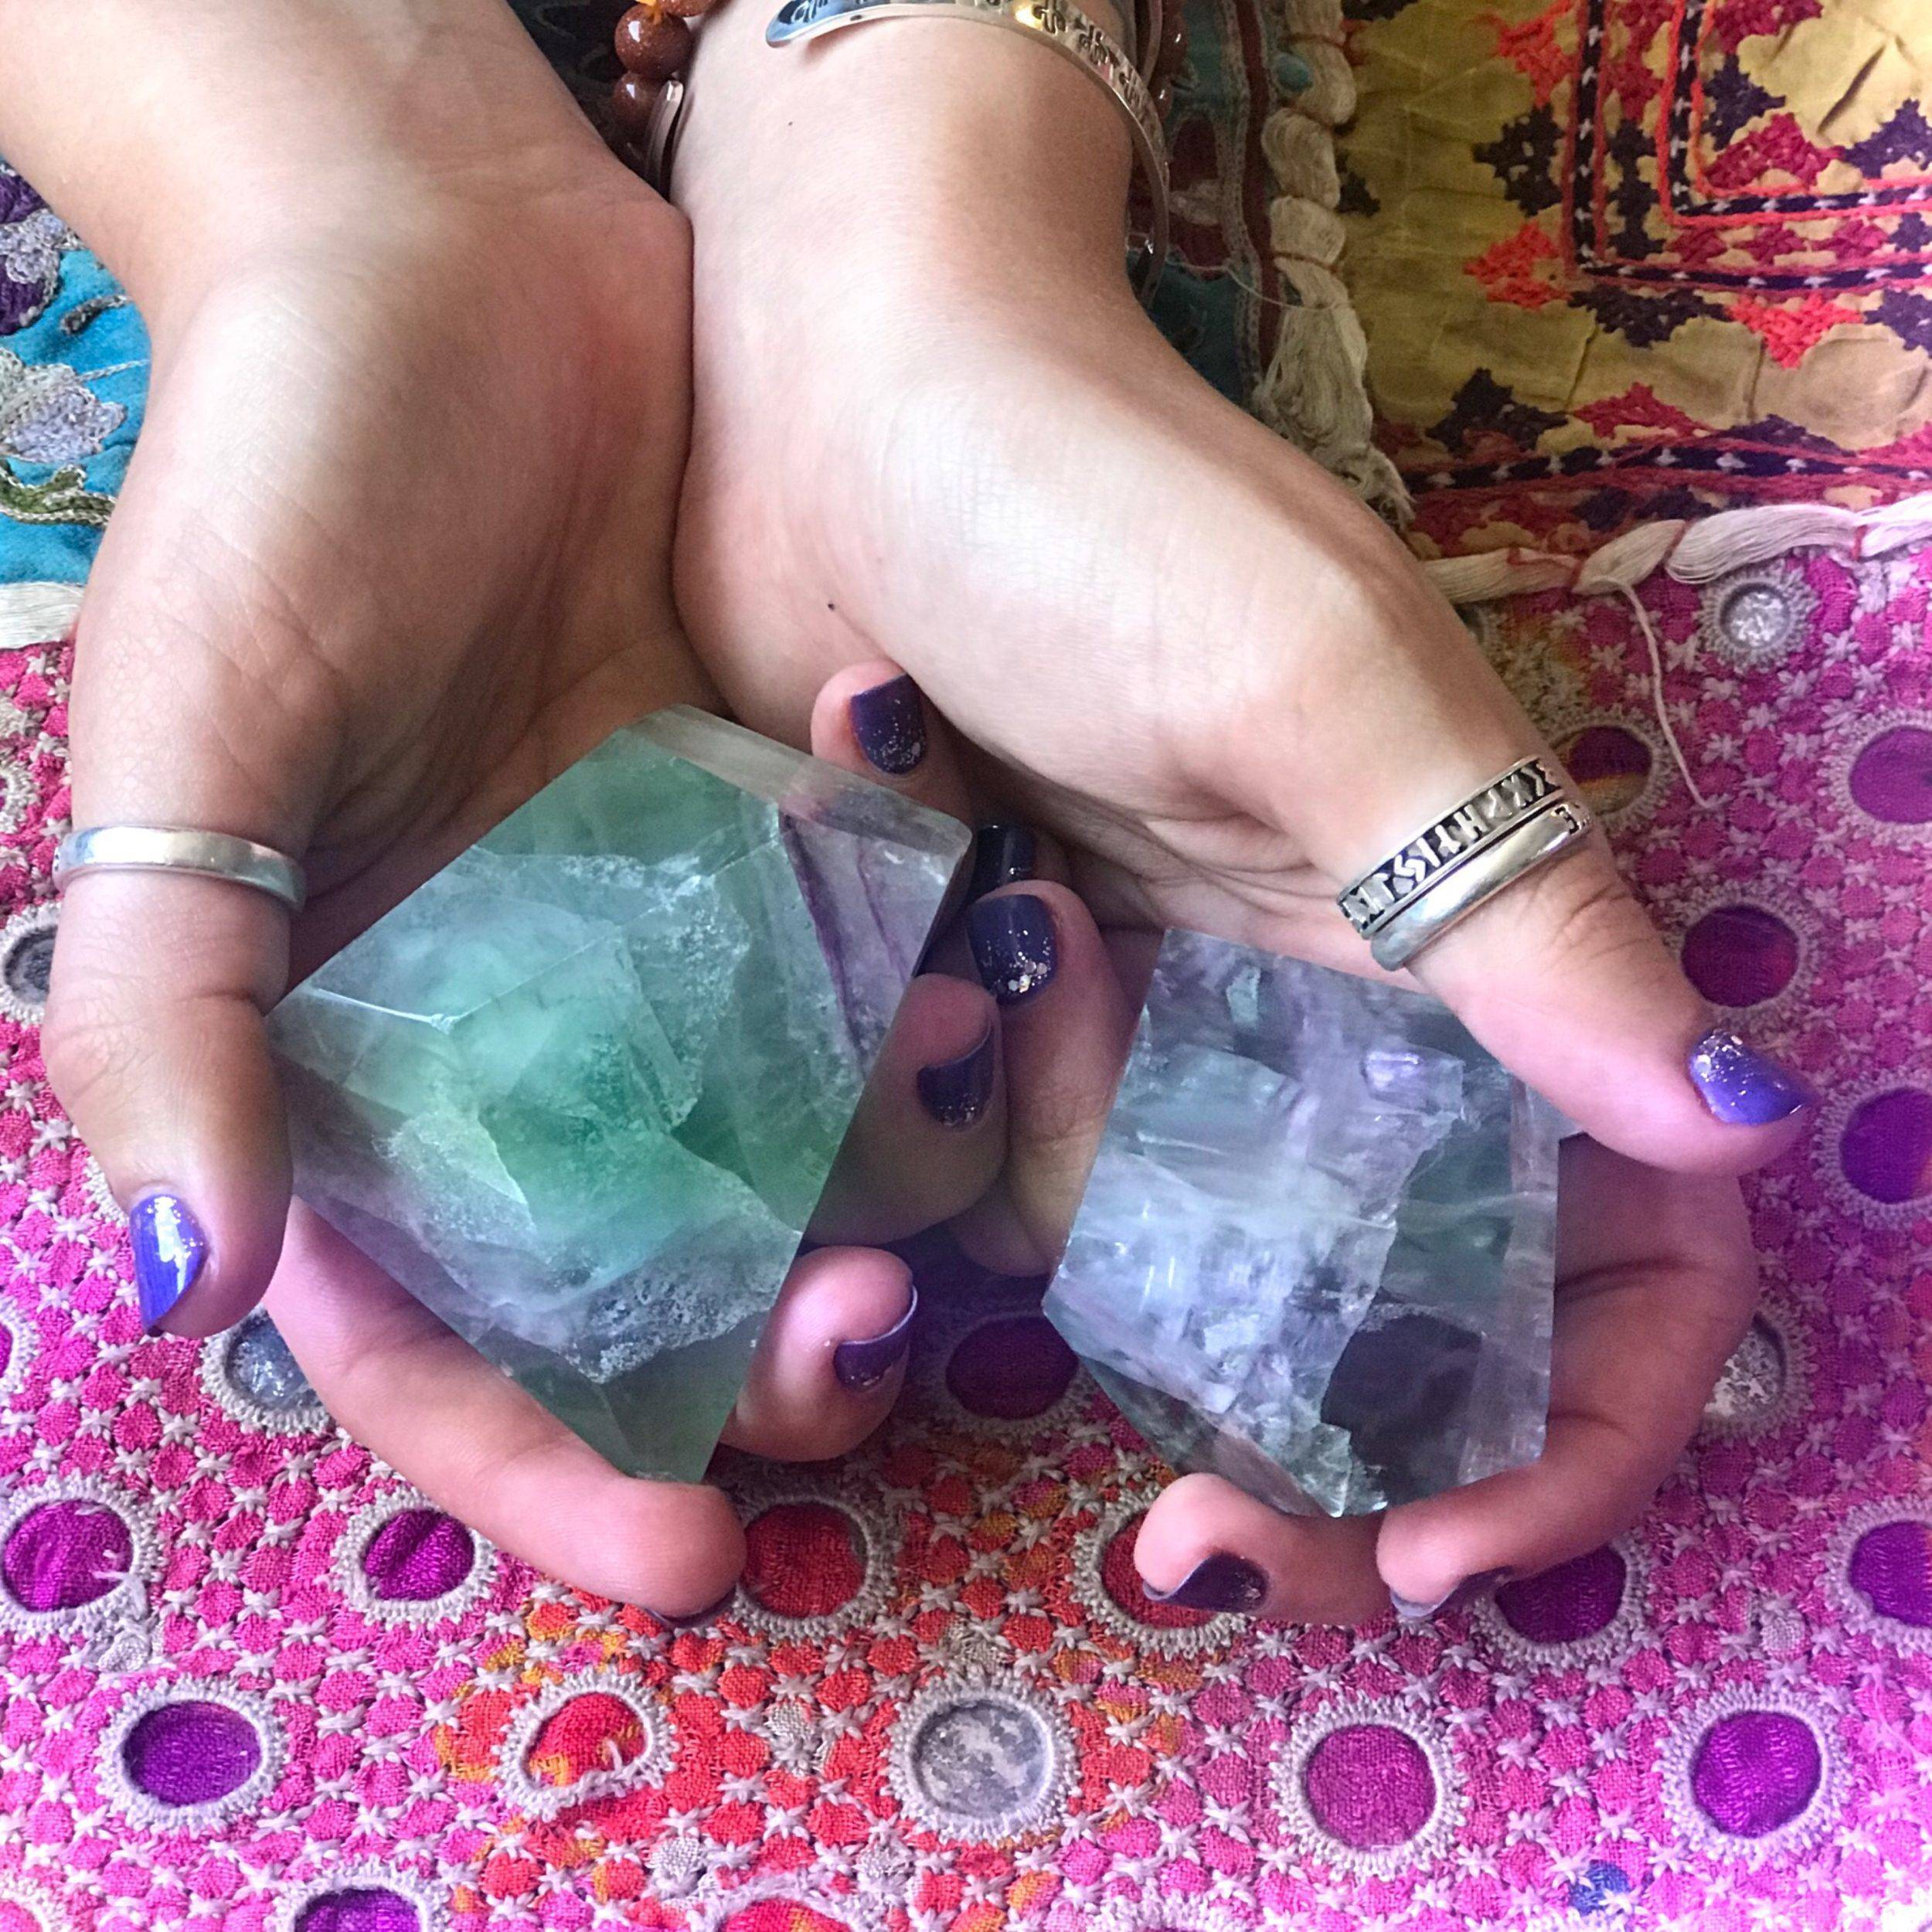 Faceted_Fluorite_1of3_8_2